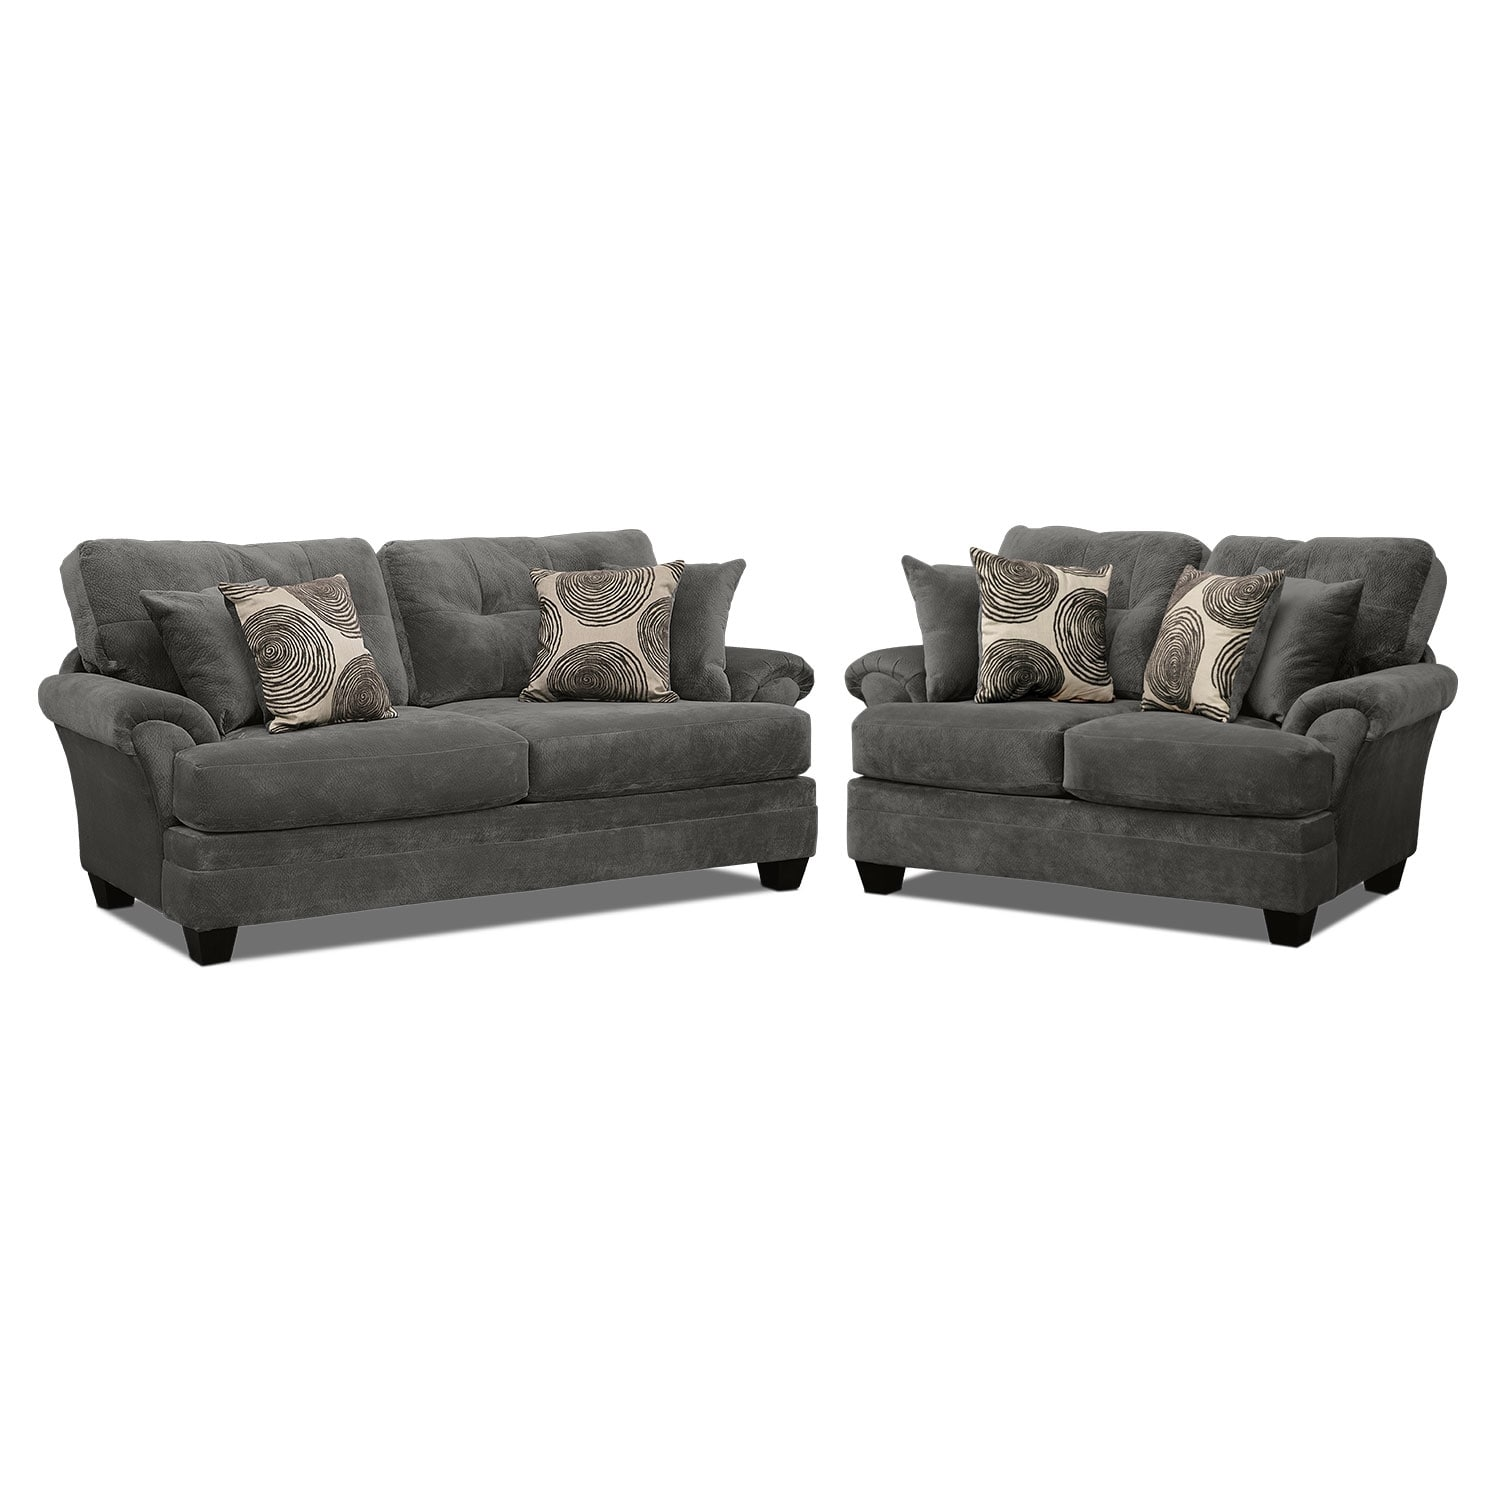 Sectional Gray Sofa Set: Cordelle Sofa And Loveseat Set - Gray